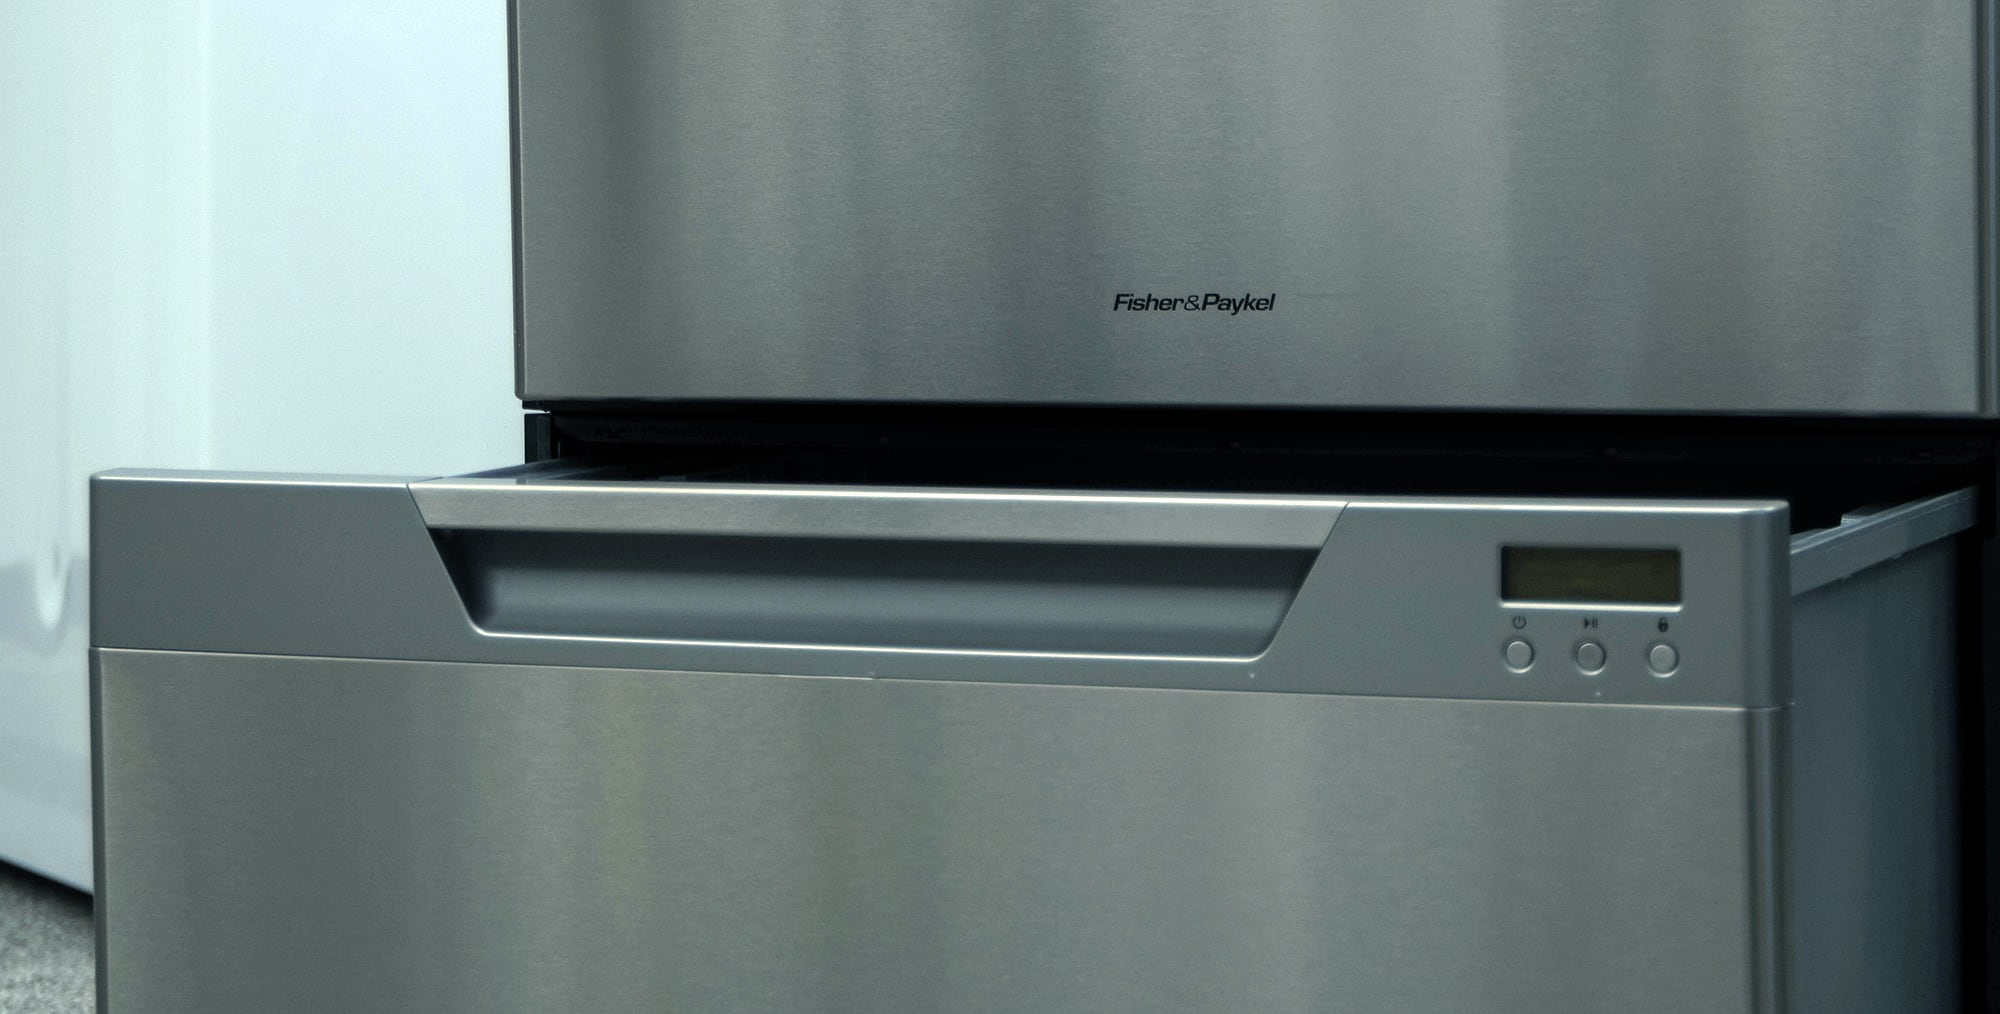 If you're a fan of the drawer design be aware that Fisher & Paykel is pretty much your only option.